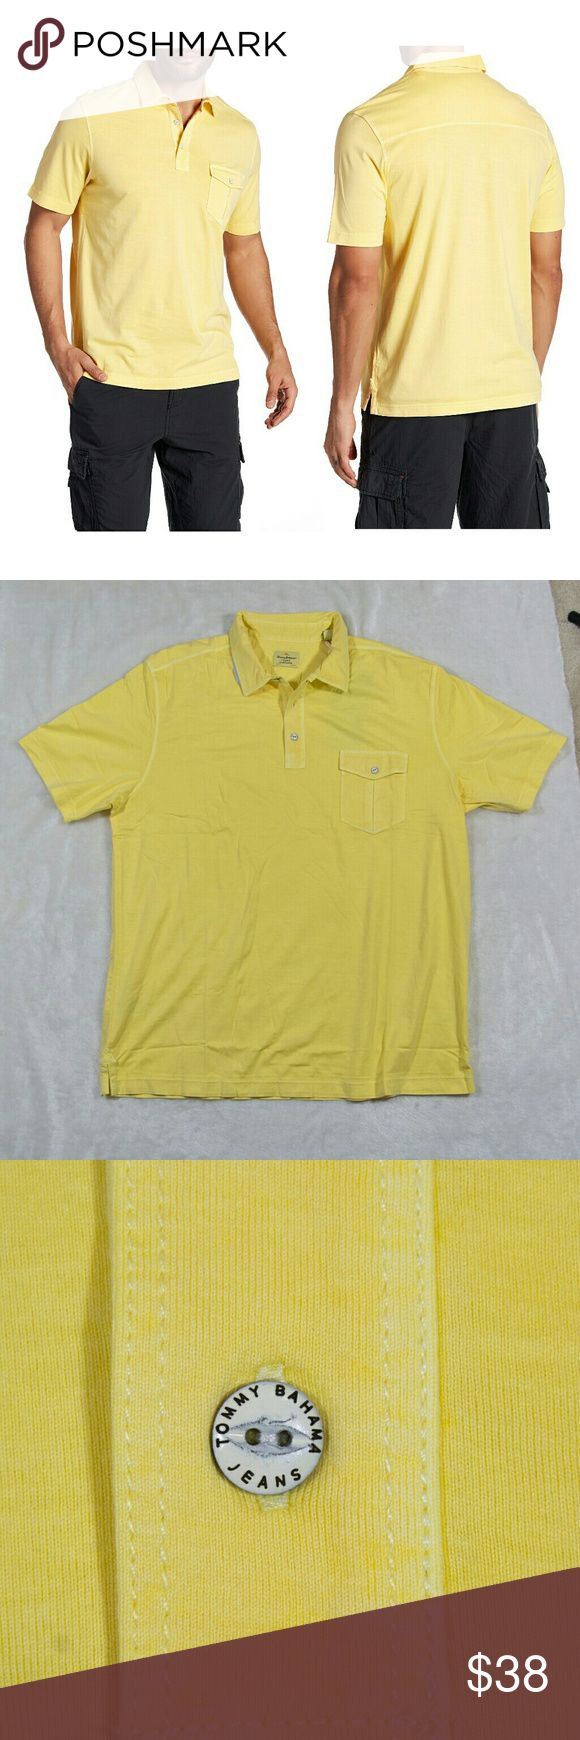 "NWT TOMMY BAHAMA yellow Polo shirt New with tag TOMMY BAHAMA sz XL Vacanza short sleeves polo MSRP $88  color: banana  - 60% cotton, 40% Tencel - Spread collar - Short sleeves - Partial front button closure - Chest pocket - Approx. 28"" length - Imported Tommy Bahama Shirts Polos"